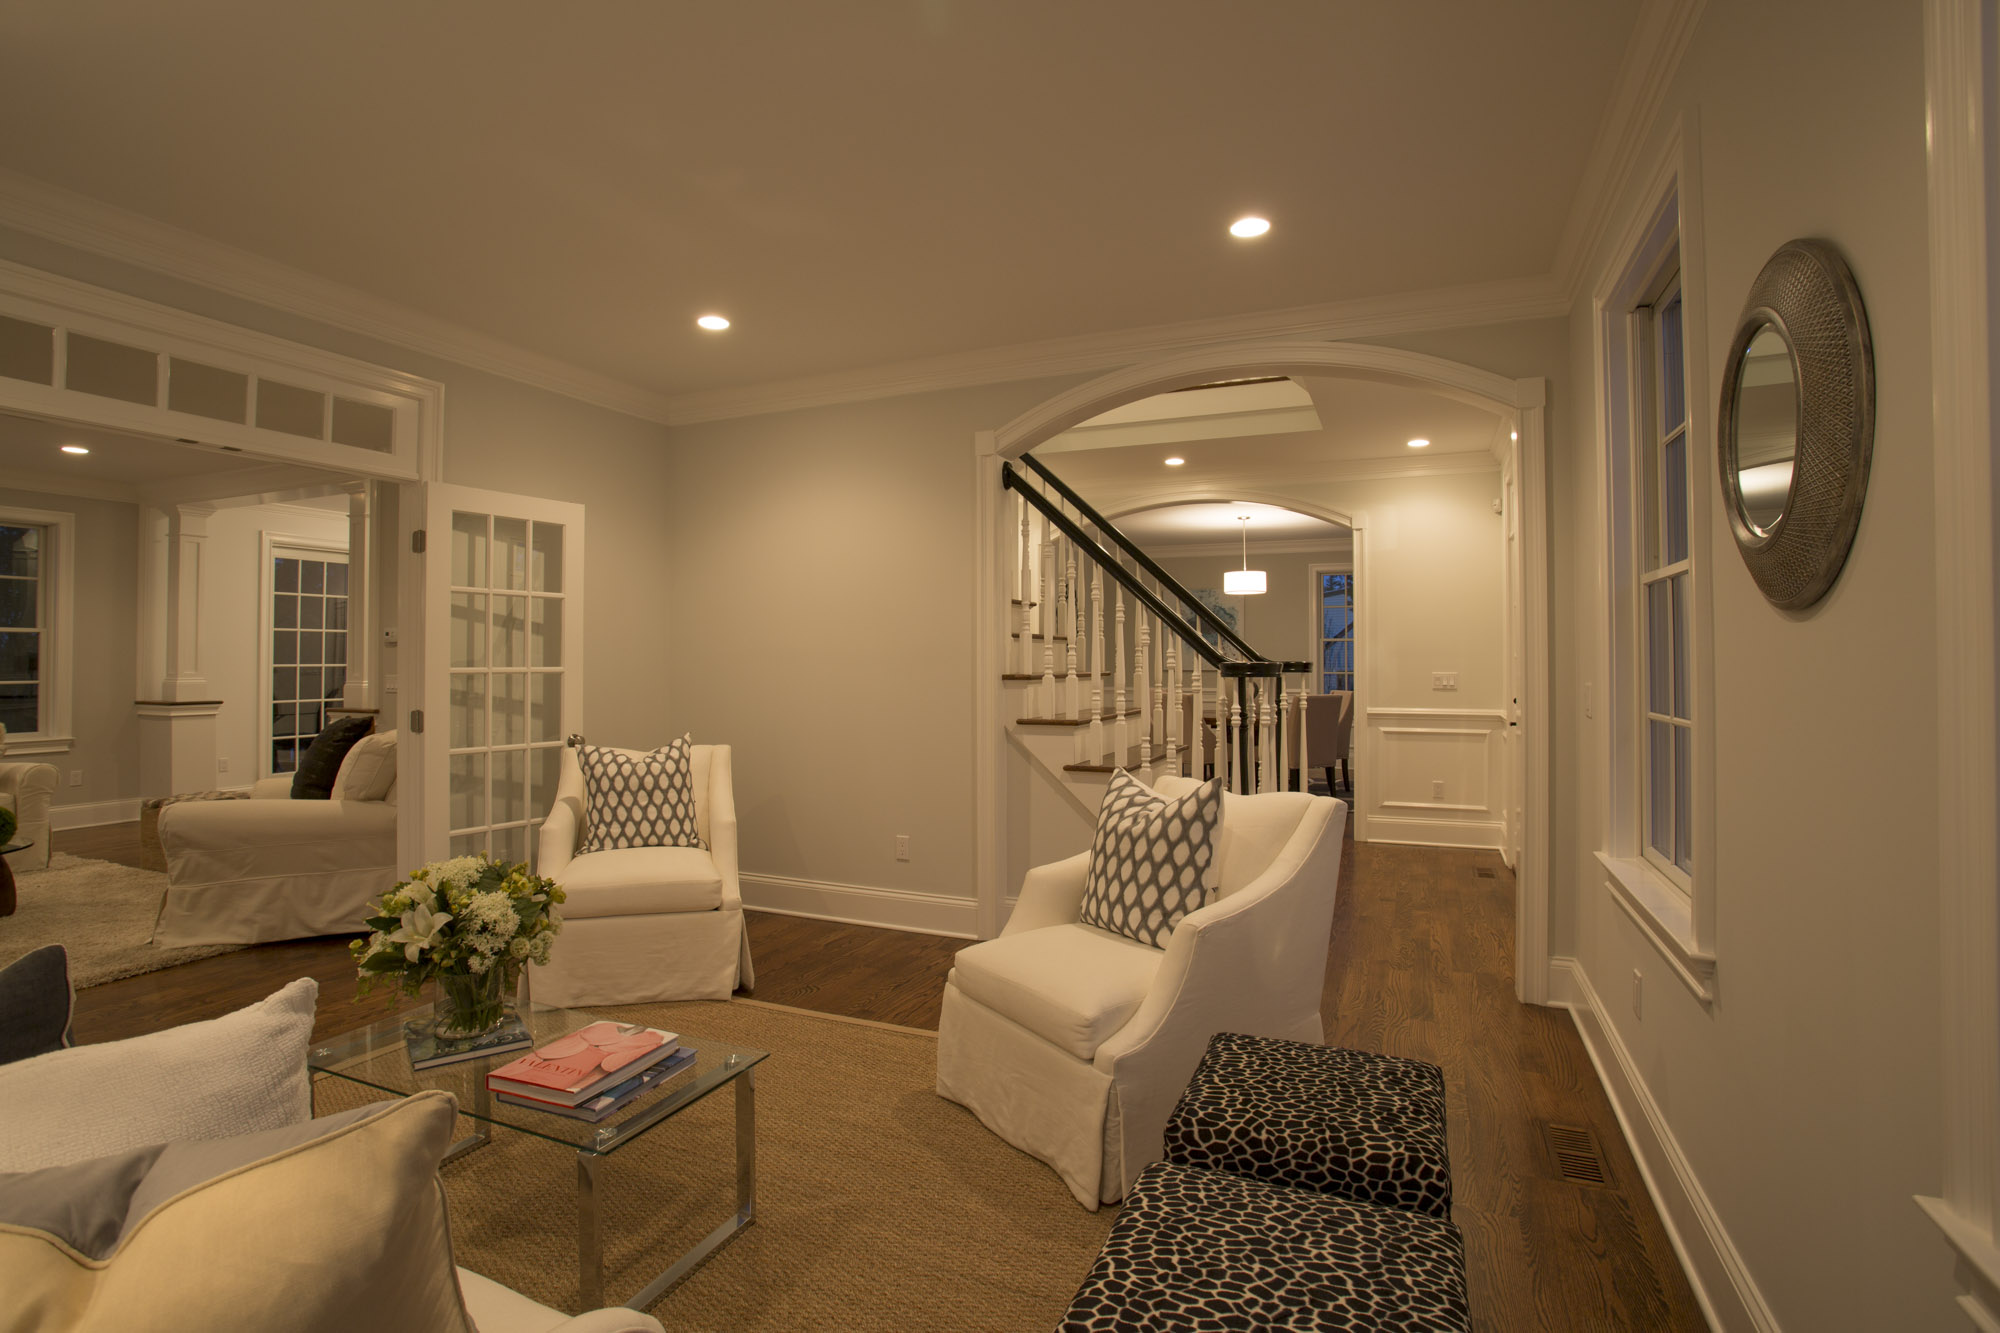 1333 #9C702F Arched Doorways And Interior French Doors With Transom Lights  Pic Interior Arched Double